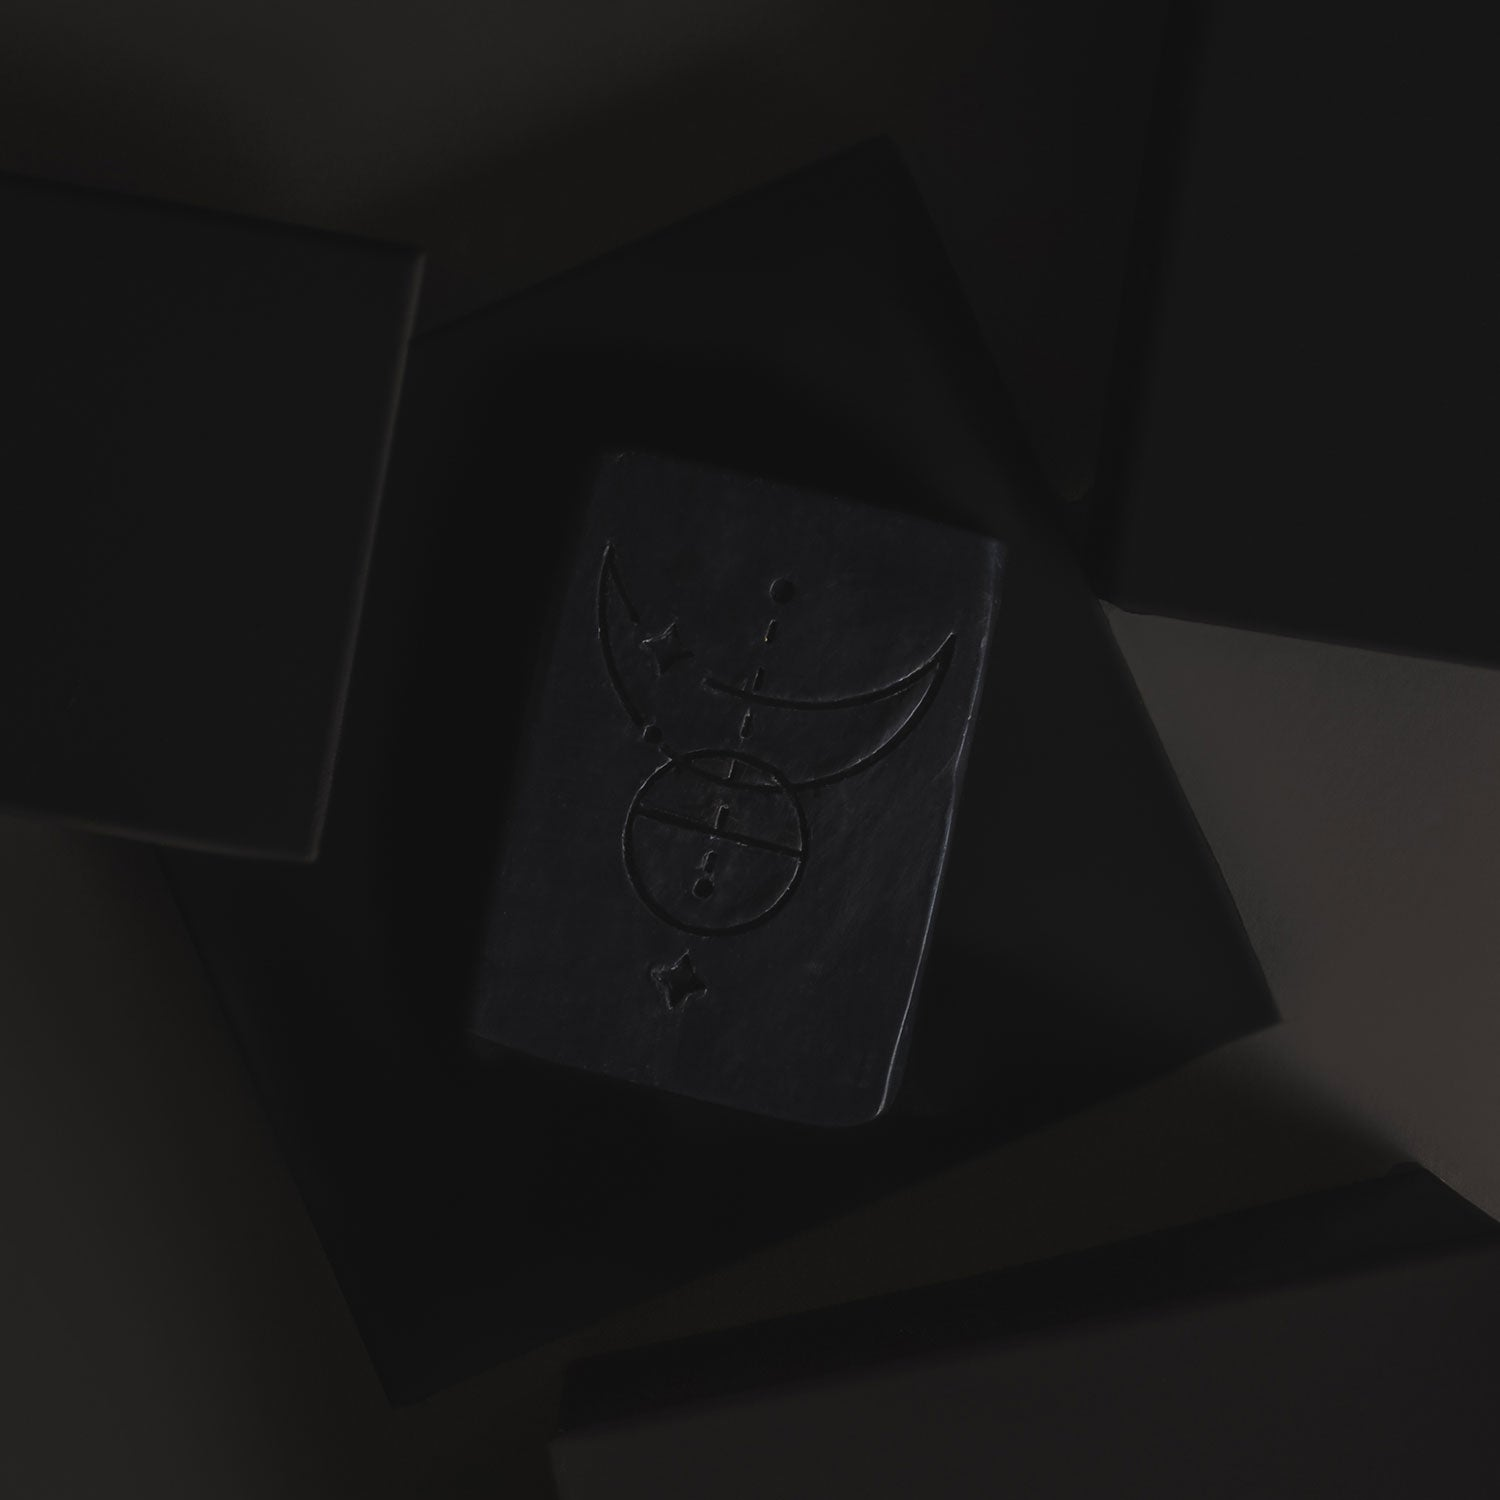 A bar of Authentic soap on a black background